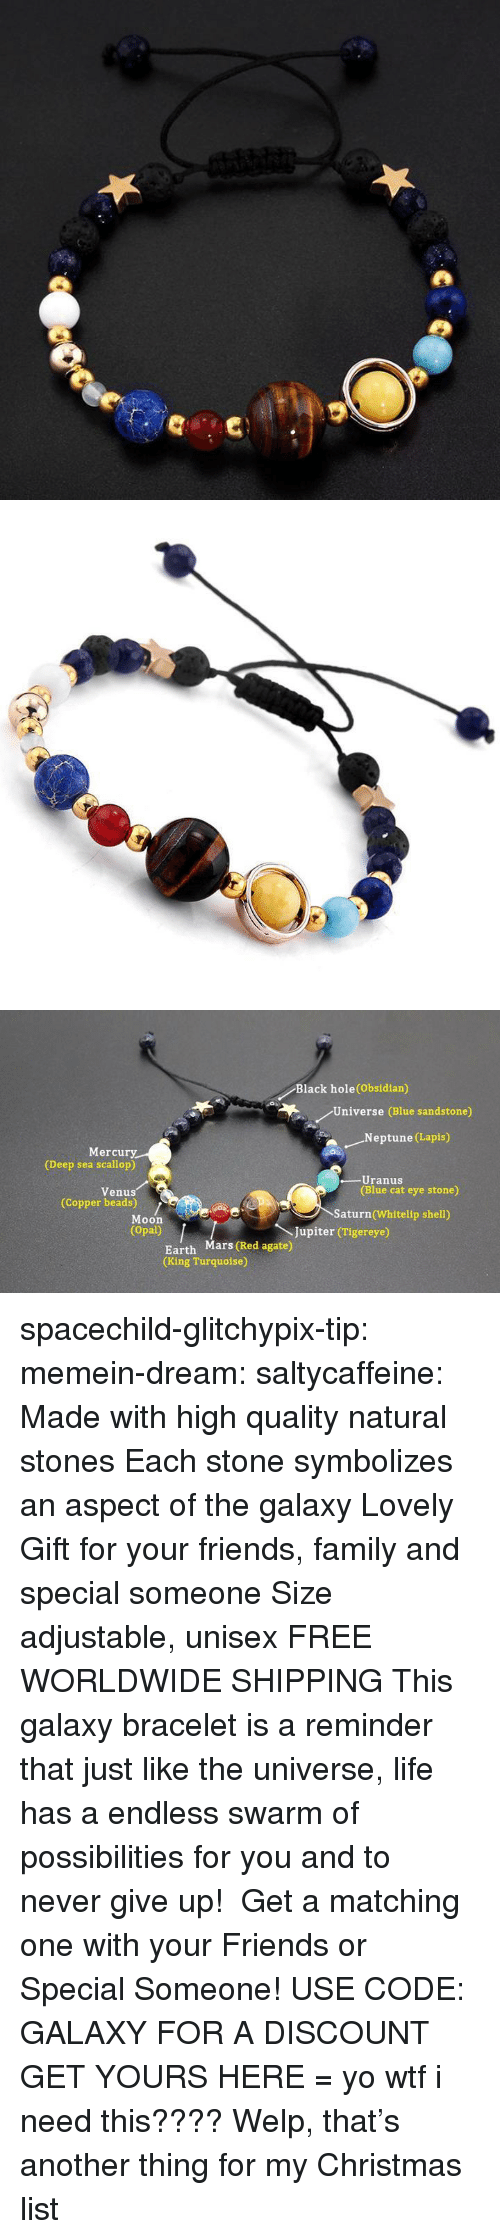 Christmas, Family, and Friends: Black hole(Obsidian)  Universe (Blue sandstone)  .Neptune (Lapis)  Mercury  (Deep sea scallop)  -Uranus  (Blue cat eye stone)  Venus  (Copper beads)  Saturn (Whitelip shell)  Moon  (Opal)  Jupiter (Tigereye)  Earth Mars (Red agate)  (King Turquoise) spacechild-glitchypix-tip:  memein-dream: saltycaffeine:  Made with high quality natural stones Each stone symbolizes an aspect of the galaxy Lovely Gift for your friends, family and special someone Size adjustable, unisex FREE WORLDWIDE SHIPPING This galaxy bracelet is a reminder that just like the universe, life has a endless swarm of possibilities for you and to never give up! Get a matching one with your Friends or Special Someone! USE CODE: GALAXY FOR A DISCOUNT GET YOURS HERE =  yo wtf i need this????  Welp, that's another thing for my Christmas list